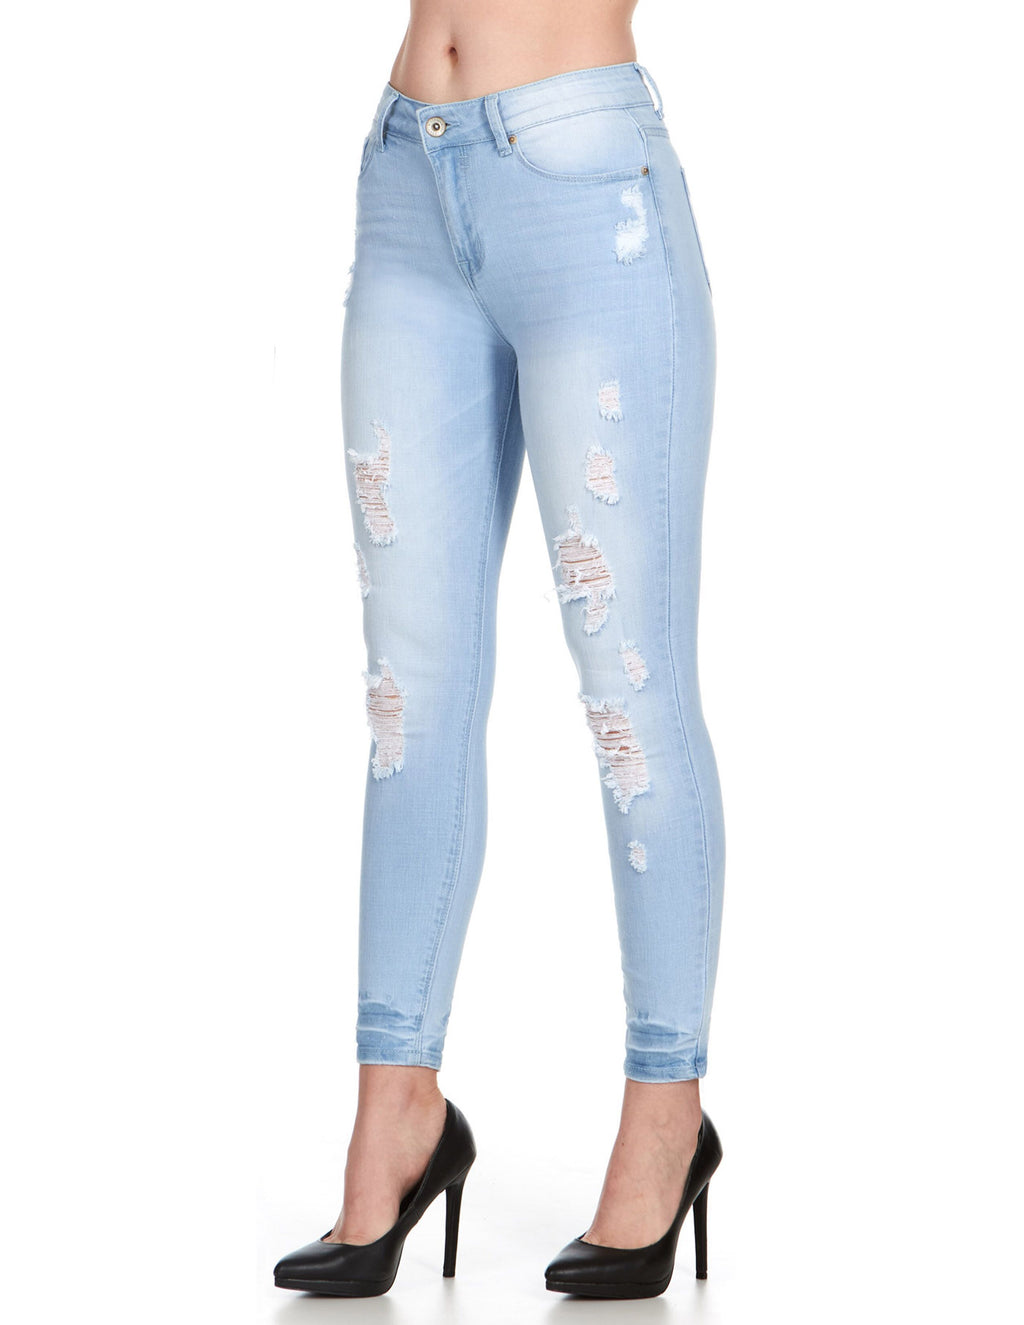 ELITE JEANS Juniors High Rise Push-up Distressed Skinny Jeans Women | Light Wash (P19198)